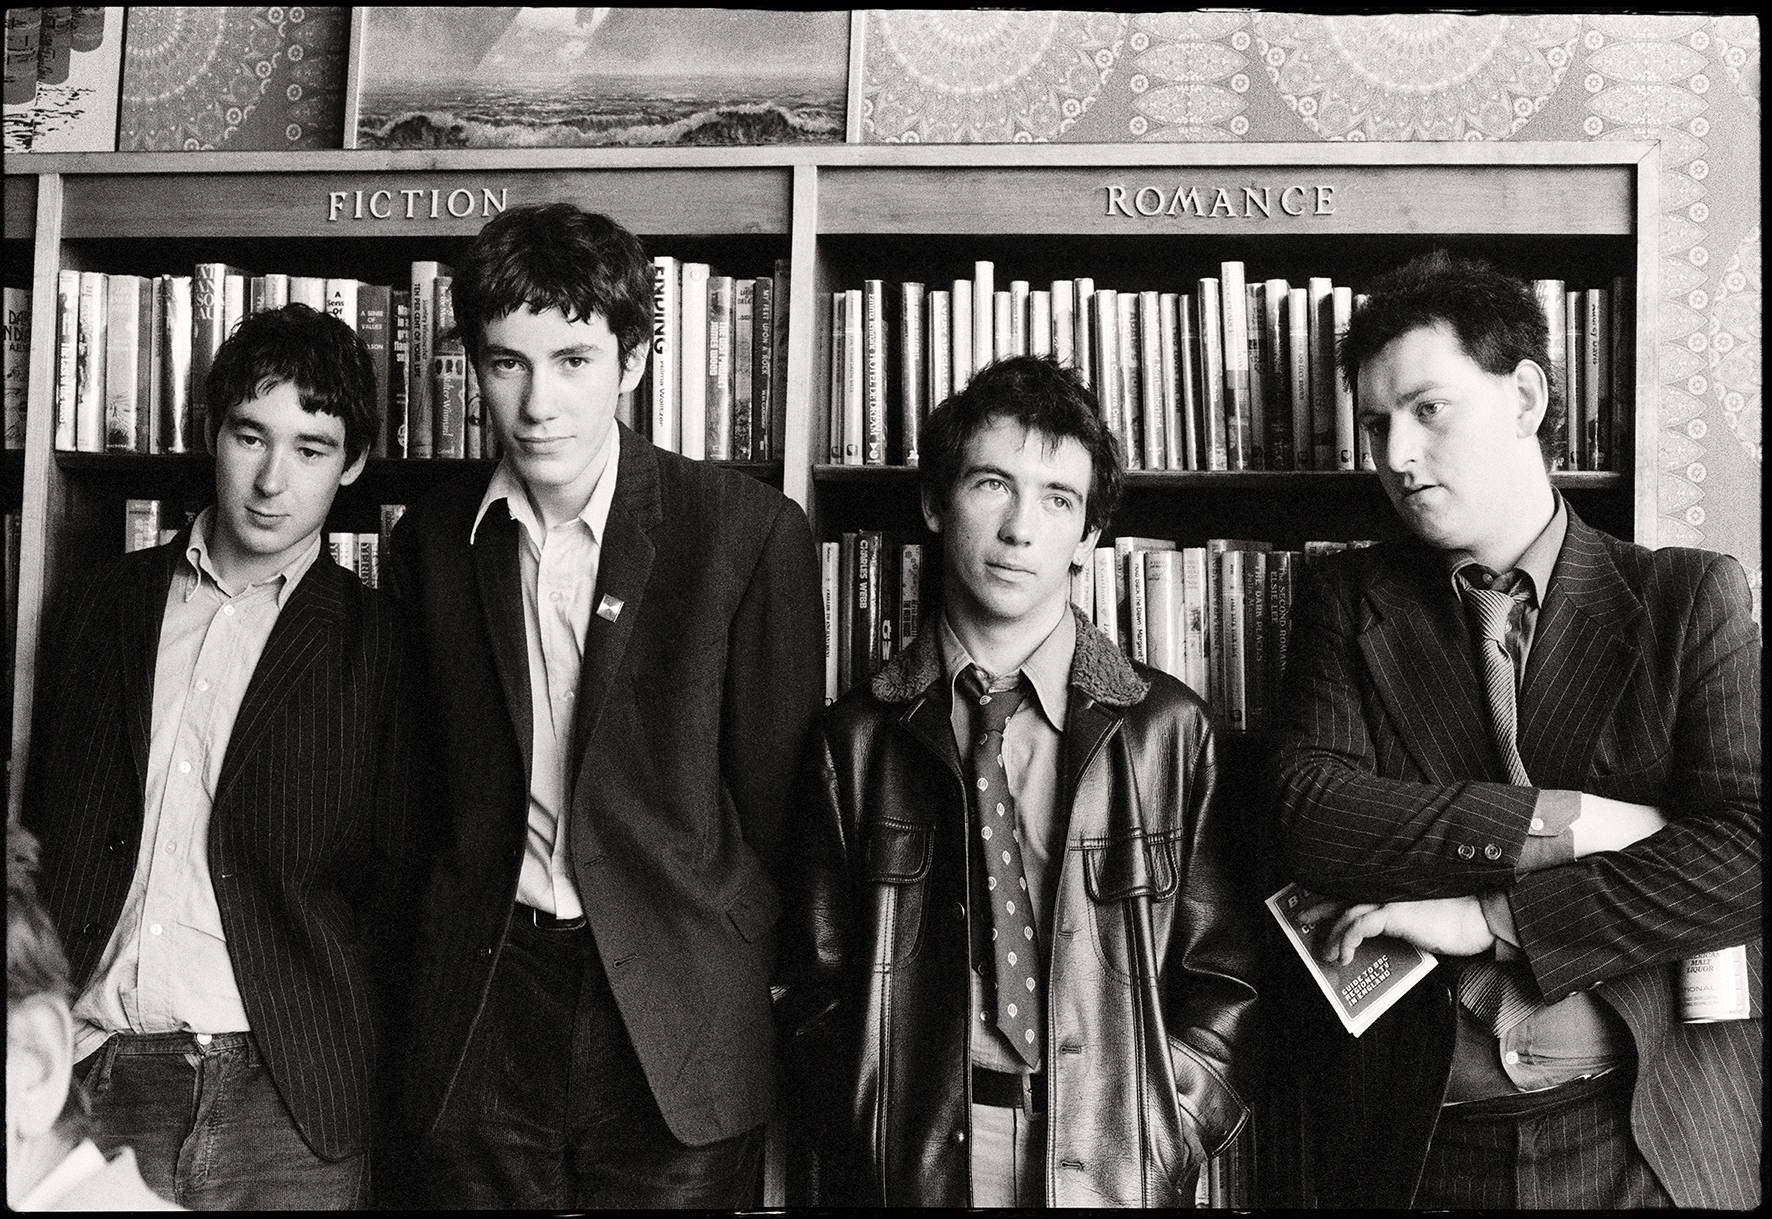 Buzzcocks, There Is A Light That Never Goes Out, Manchester Central Library, Photo Exhibition, Music